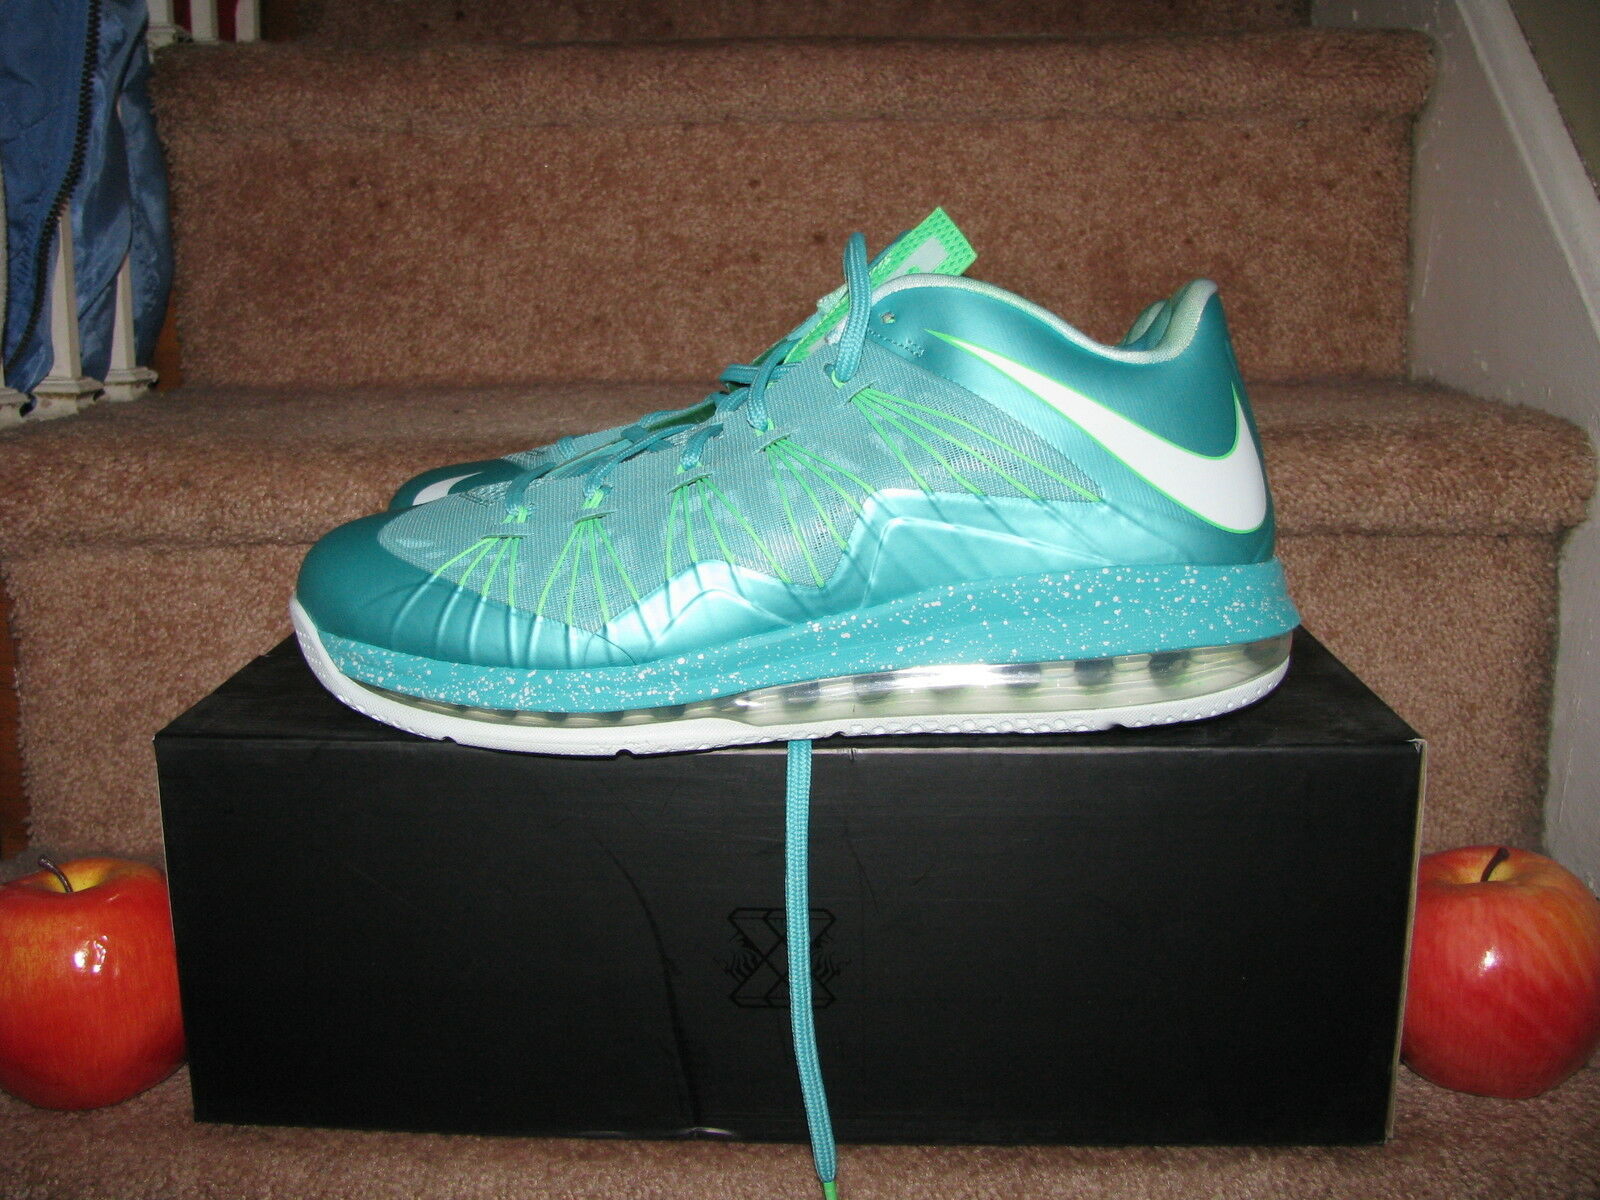 NIKE AIR MAX LEBRON X LOW   EASTER   Mint Green Christmas hero bhm as 579765-300